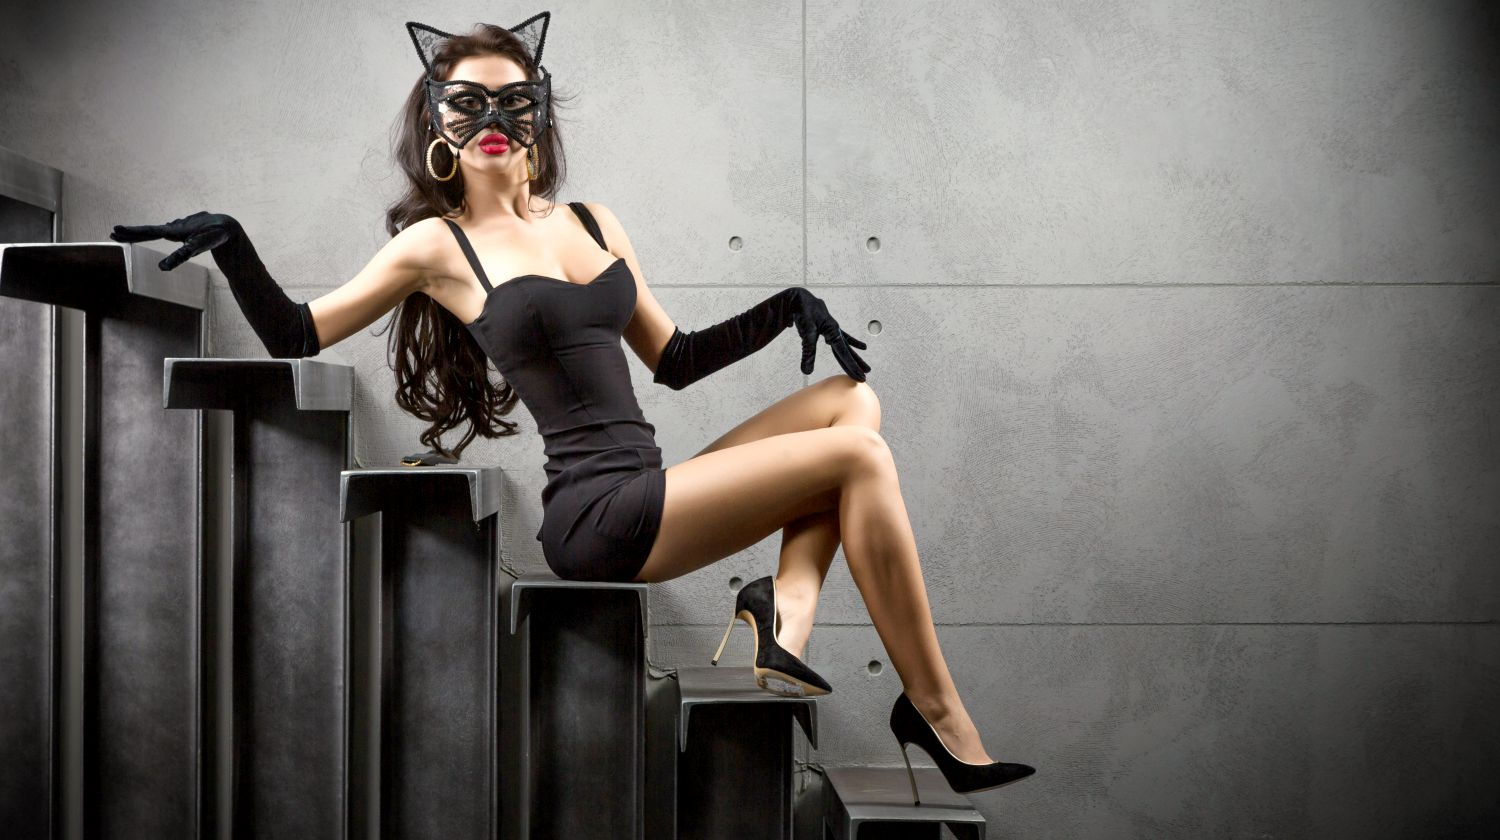 woman wearing sexy Catwoman costume sitting on stairs | DIY Sexy Halloween Costumes To Try | DIY Sexy Halloween Costumes | hot Halloween costume ideas | Featured